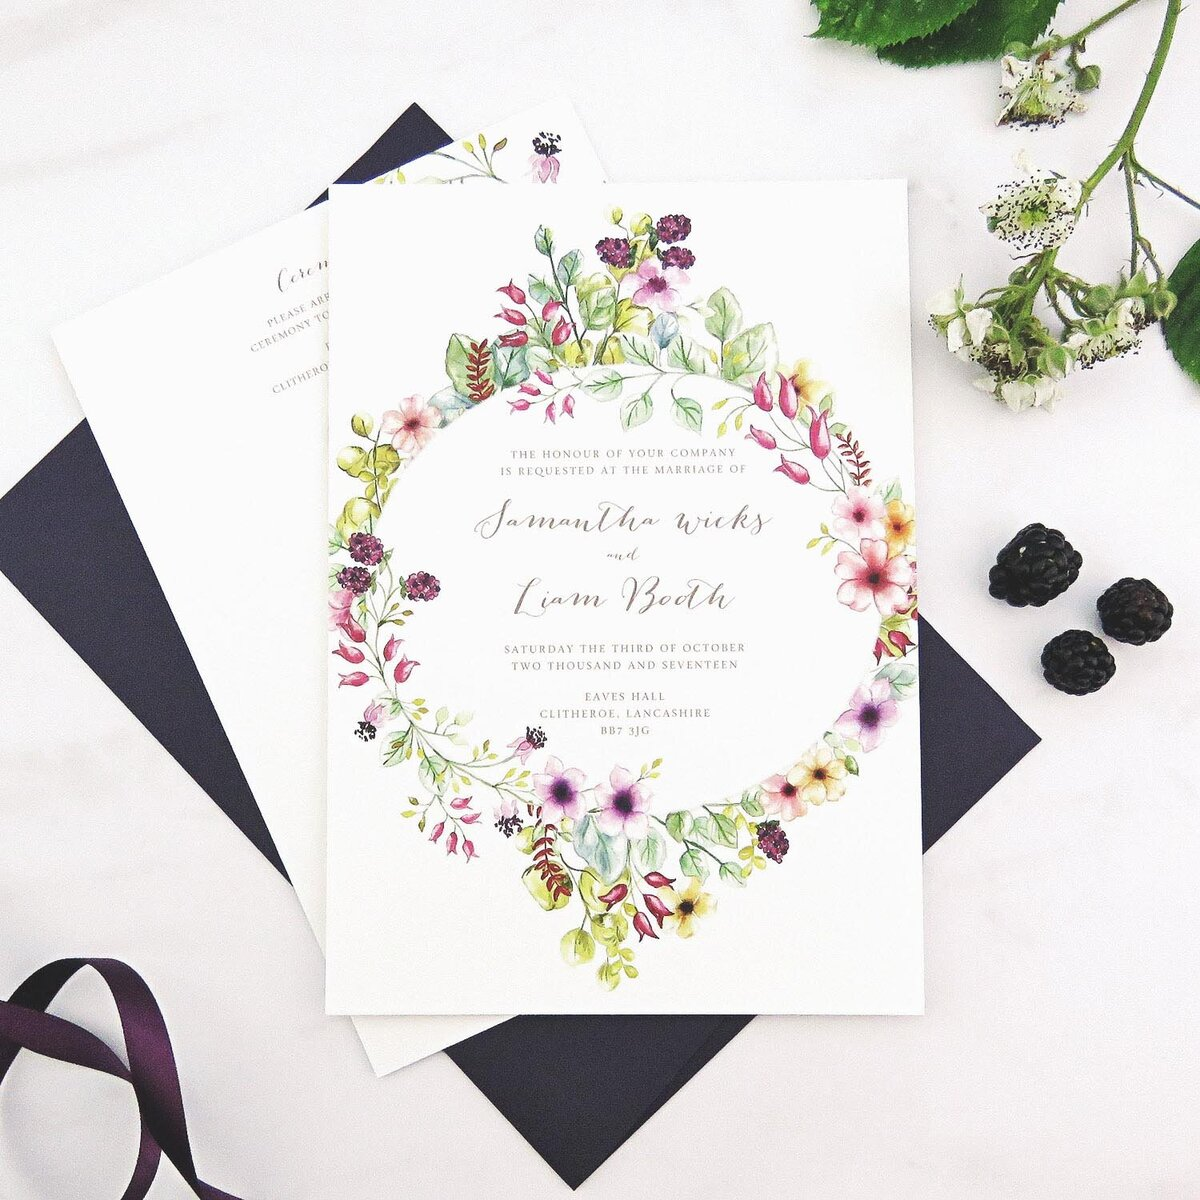 bramble_wedding_invitations